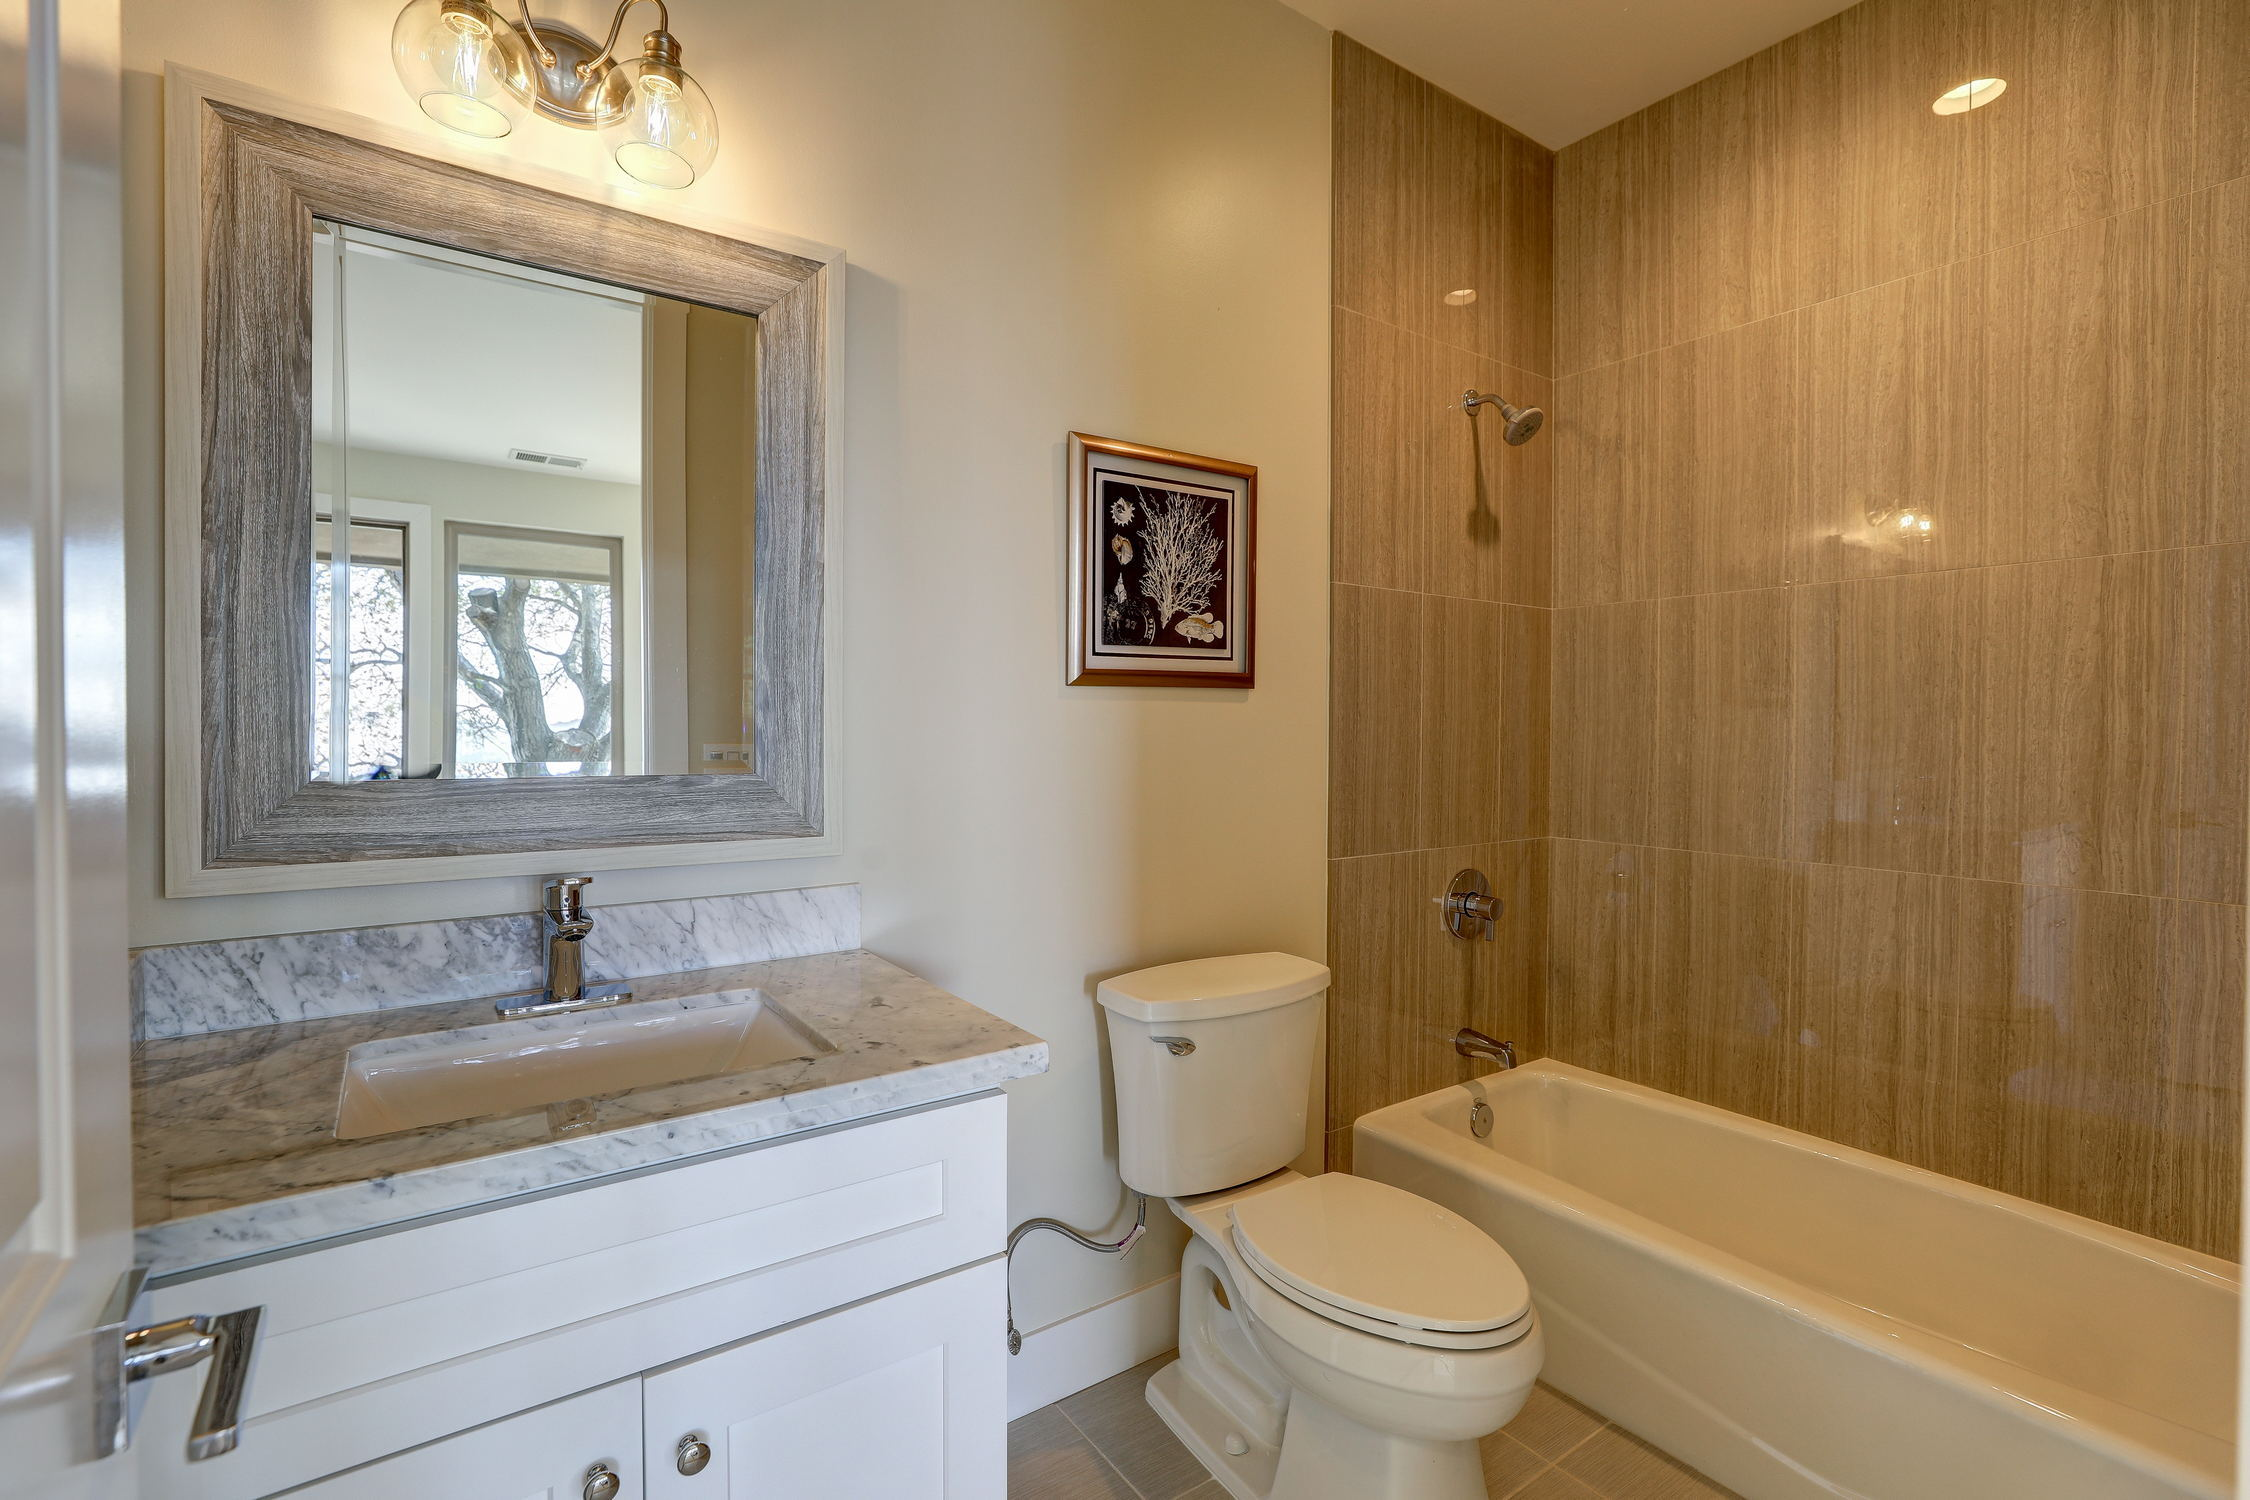 31 Drakes Cove, Larkspur Homes for Sale57 MLS - Own Marin with Compass - Mill Valley Realtor.jpg